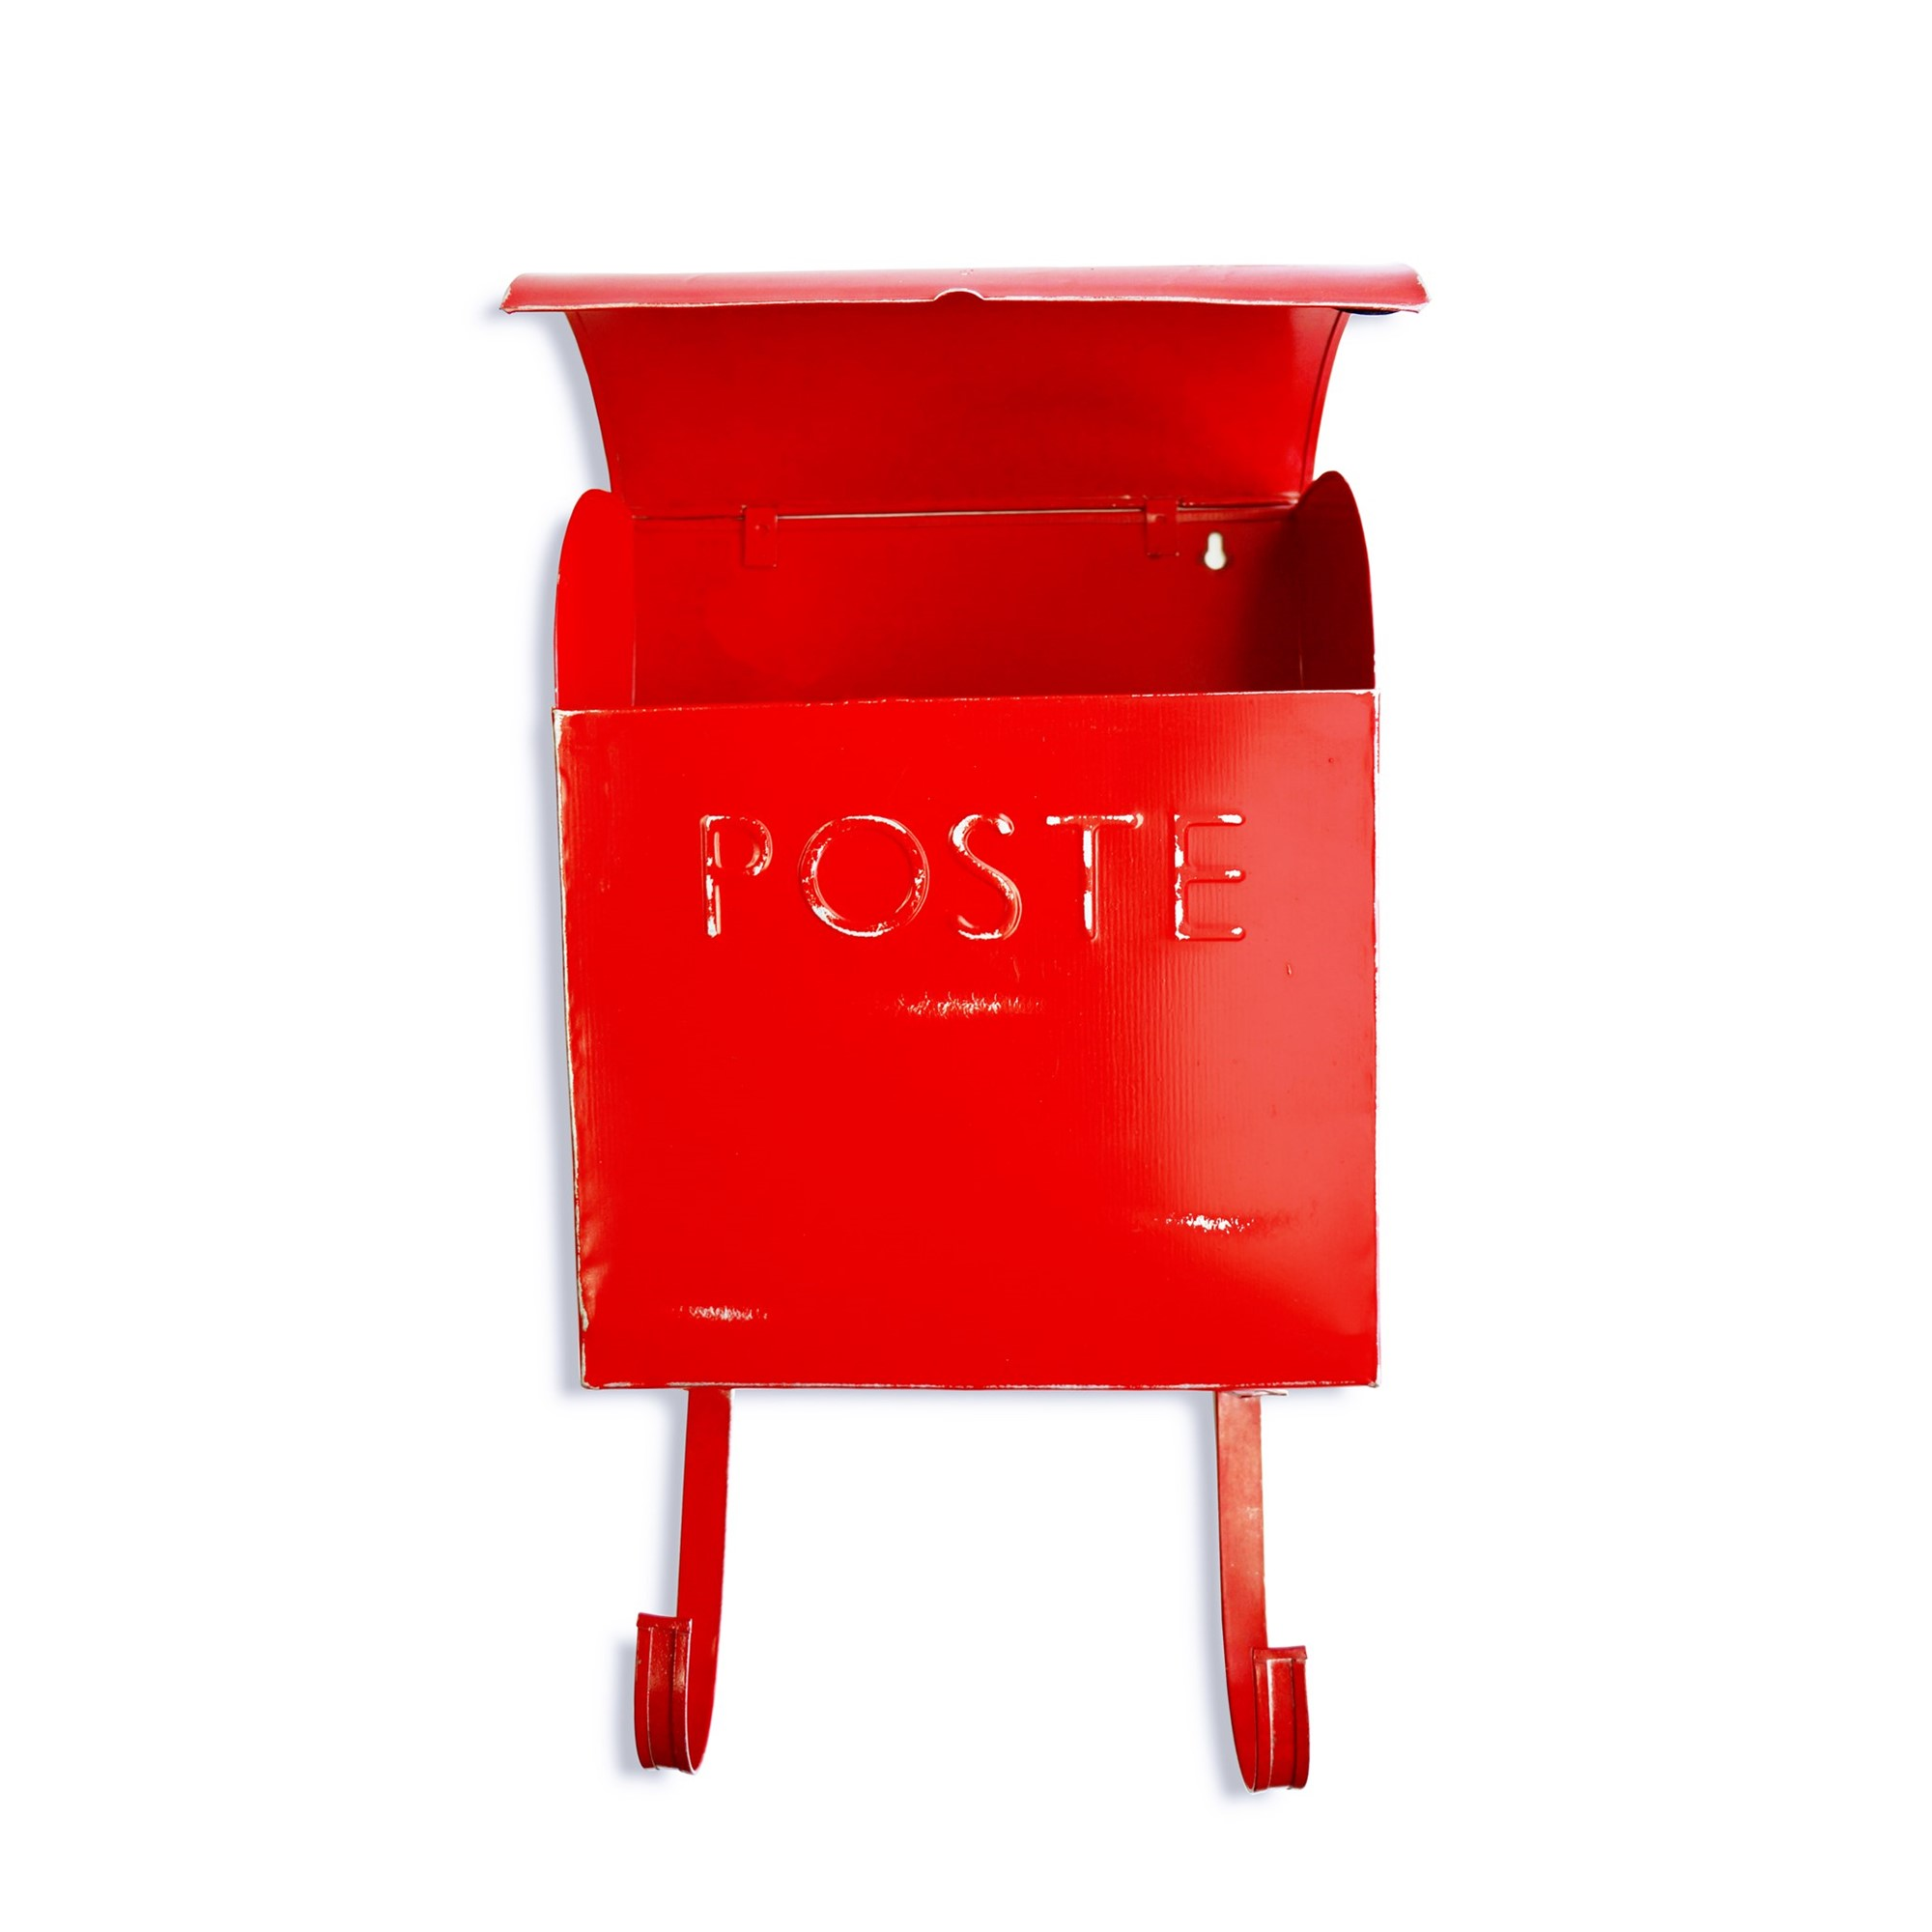 Wall Mount Rustic Red French Mailbox Shop Outlet Canada